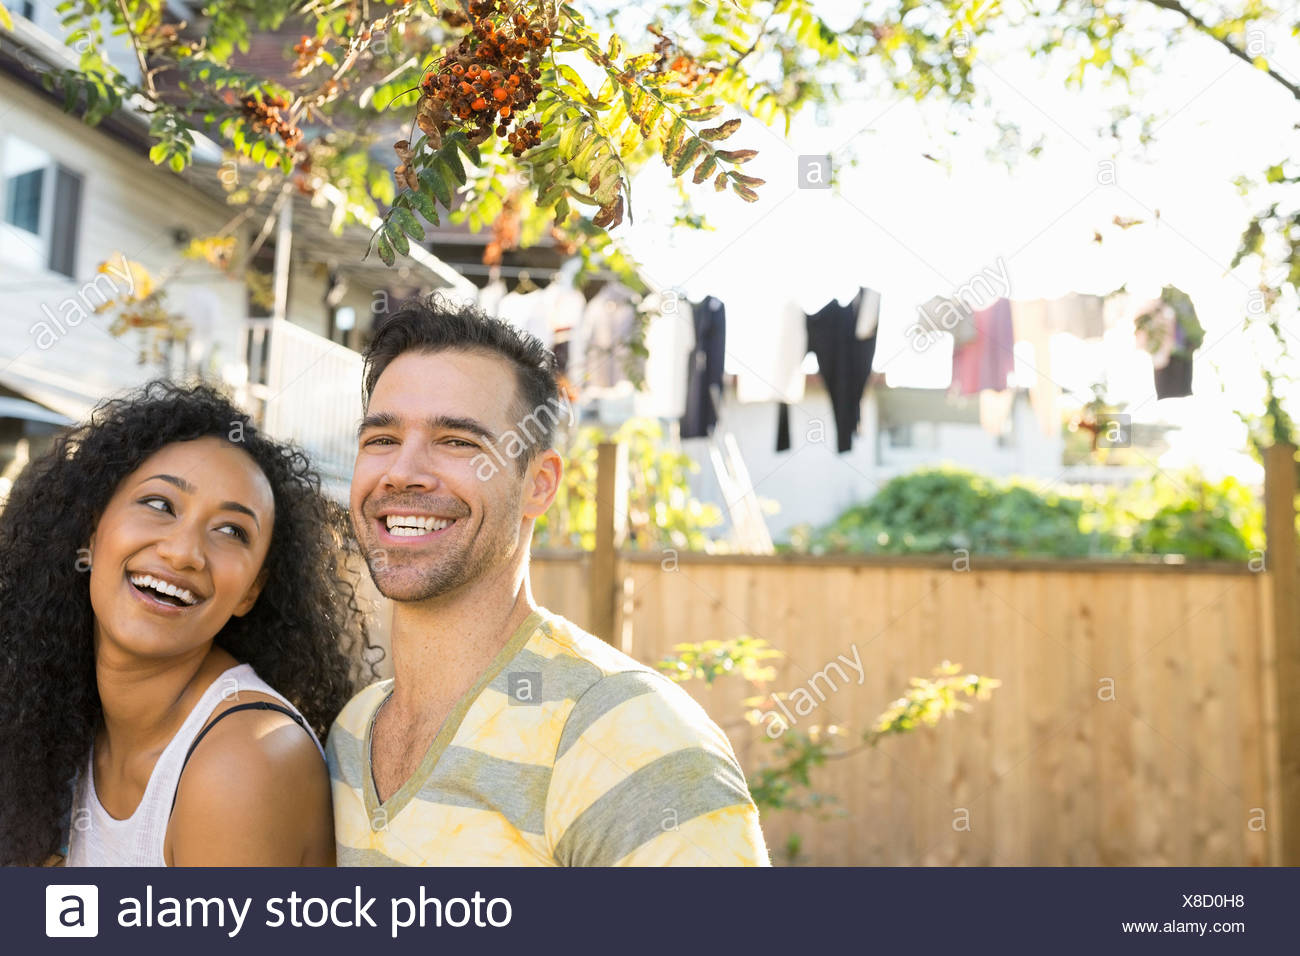 Portrait of laughing couple in sunny backyard - Stock Image